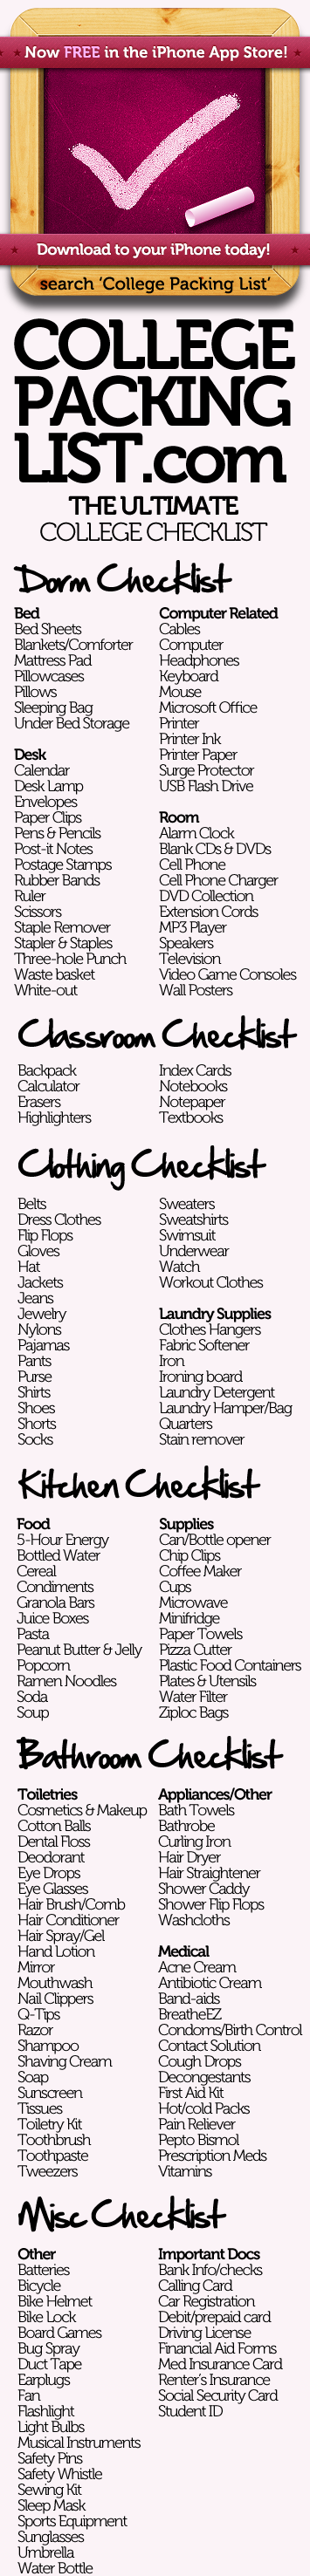 College packing checklist. This interactive list allows you to check off items as you pack them, remove items that don't apply to you, view tips about each item and print your customized packing list.